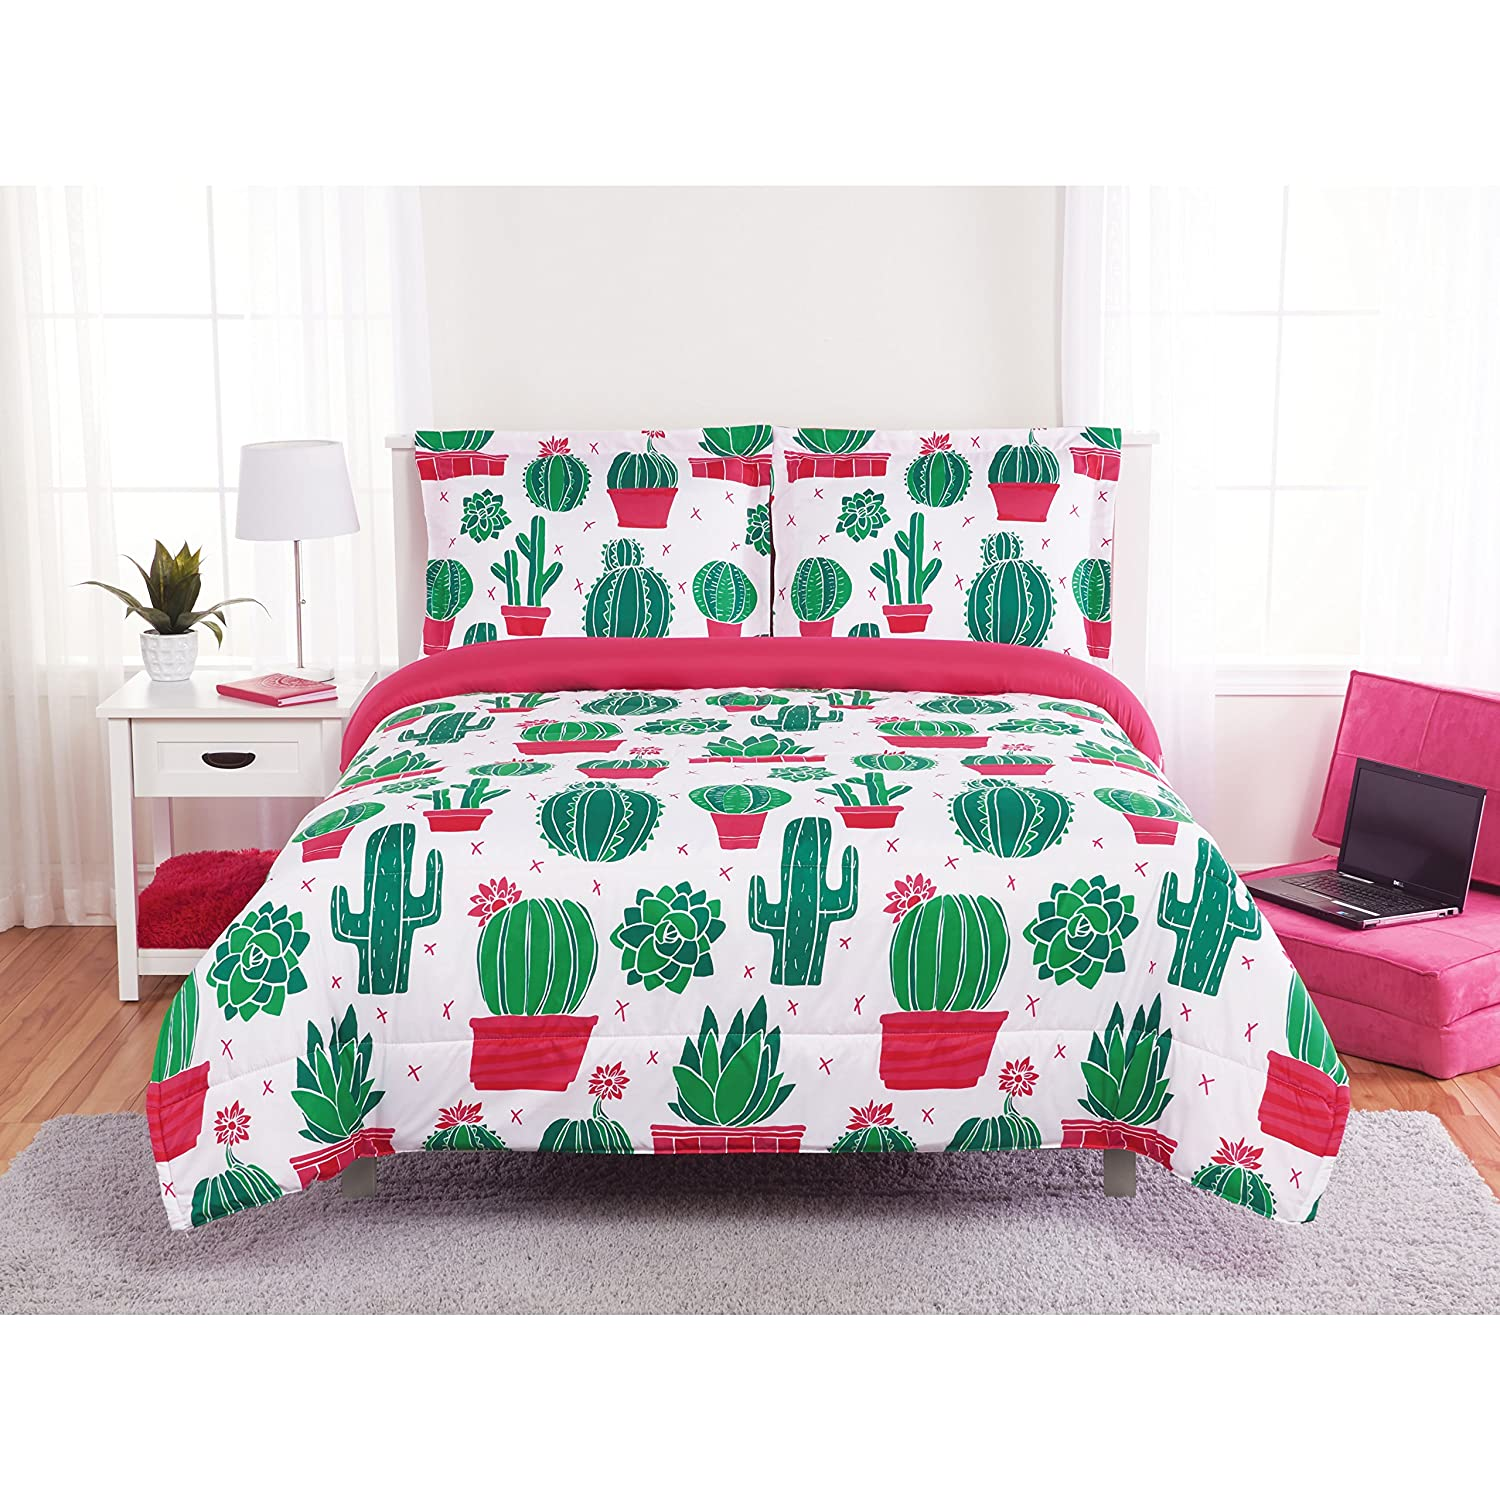 Unkk 2 Piece Girls White Pink Green Cactus Themed Comforter Twin Set, Cute Fun Cacti Floral Pot Plant Bedding, Multi Desert Flower Potted Plants All Over X Pattern, Microfiber